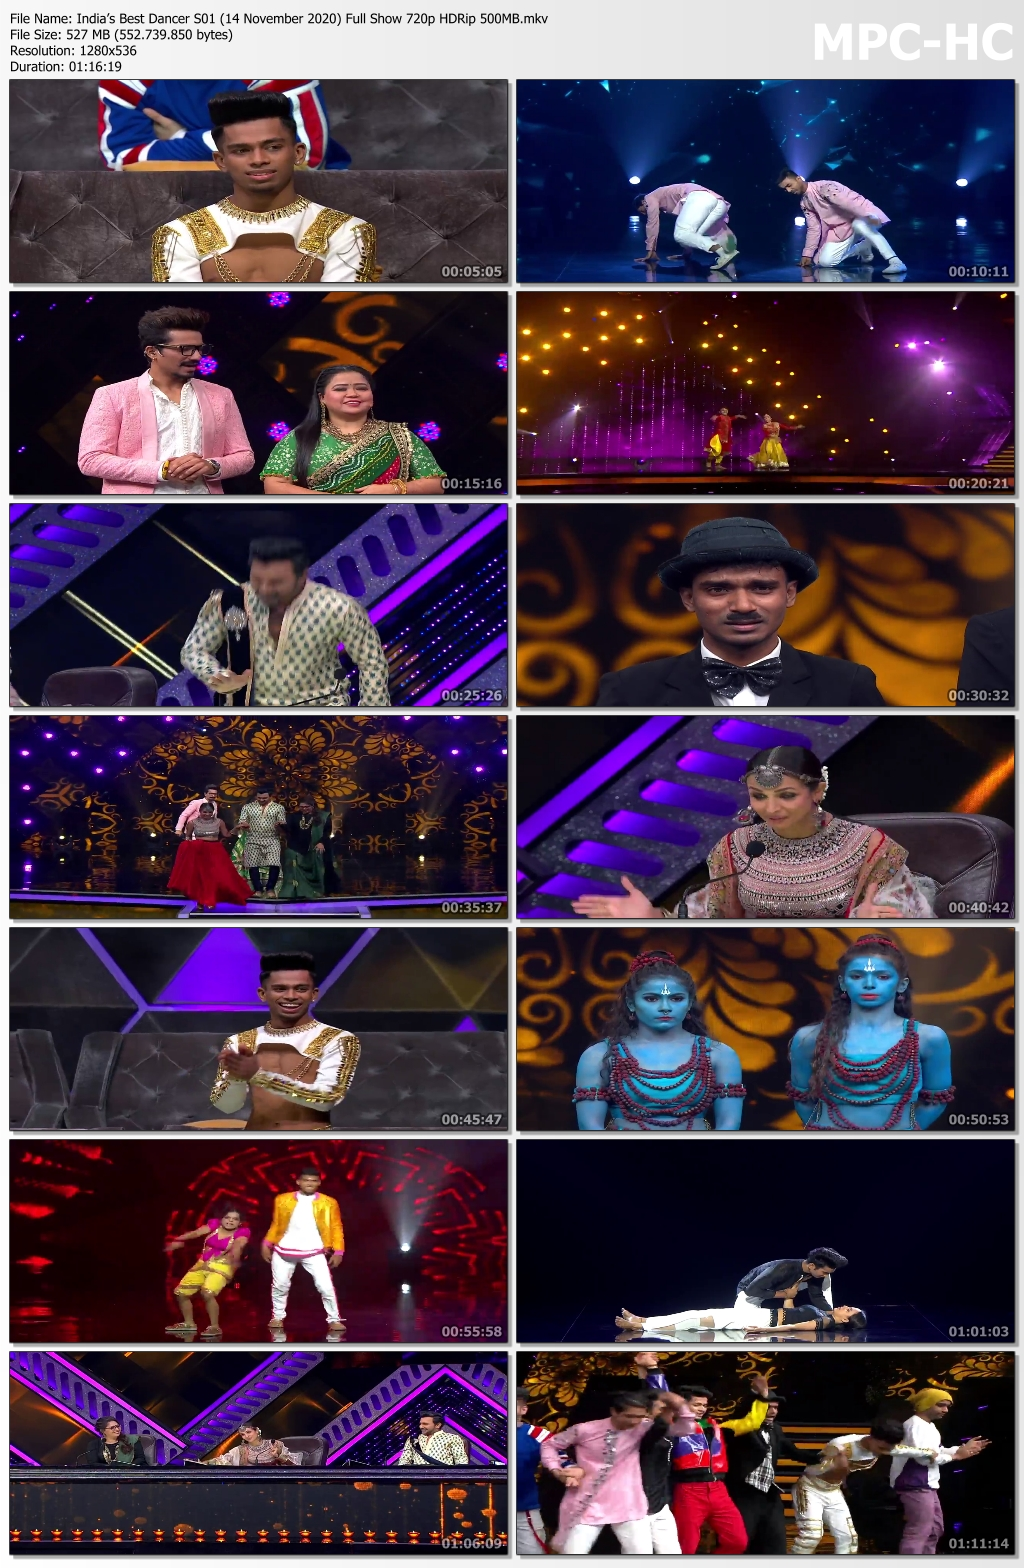 India-s-Best-Dancer-S01-14-November-2020-Full-Show-720p-HDRip-500-MB-mkv-thumbs